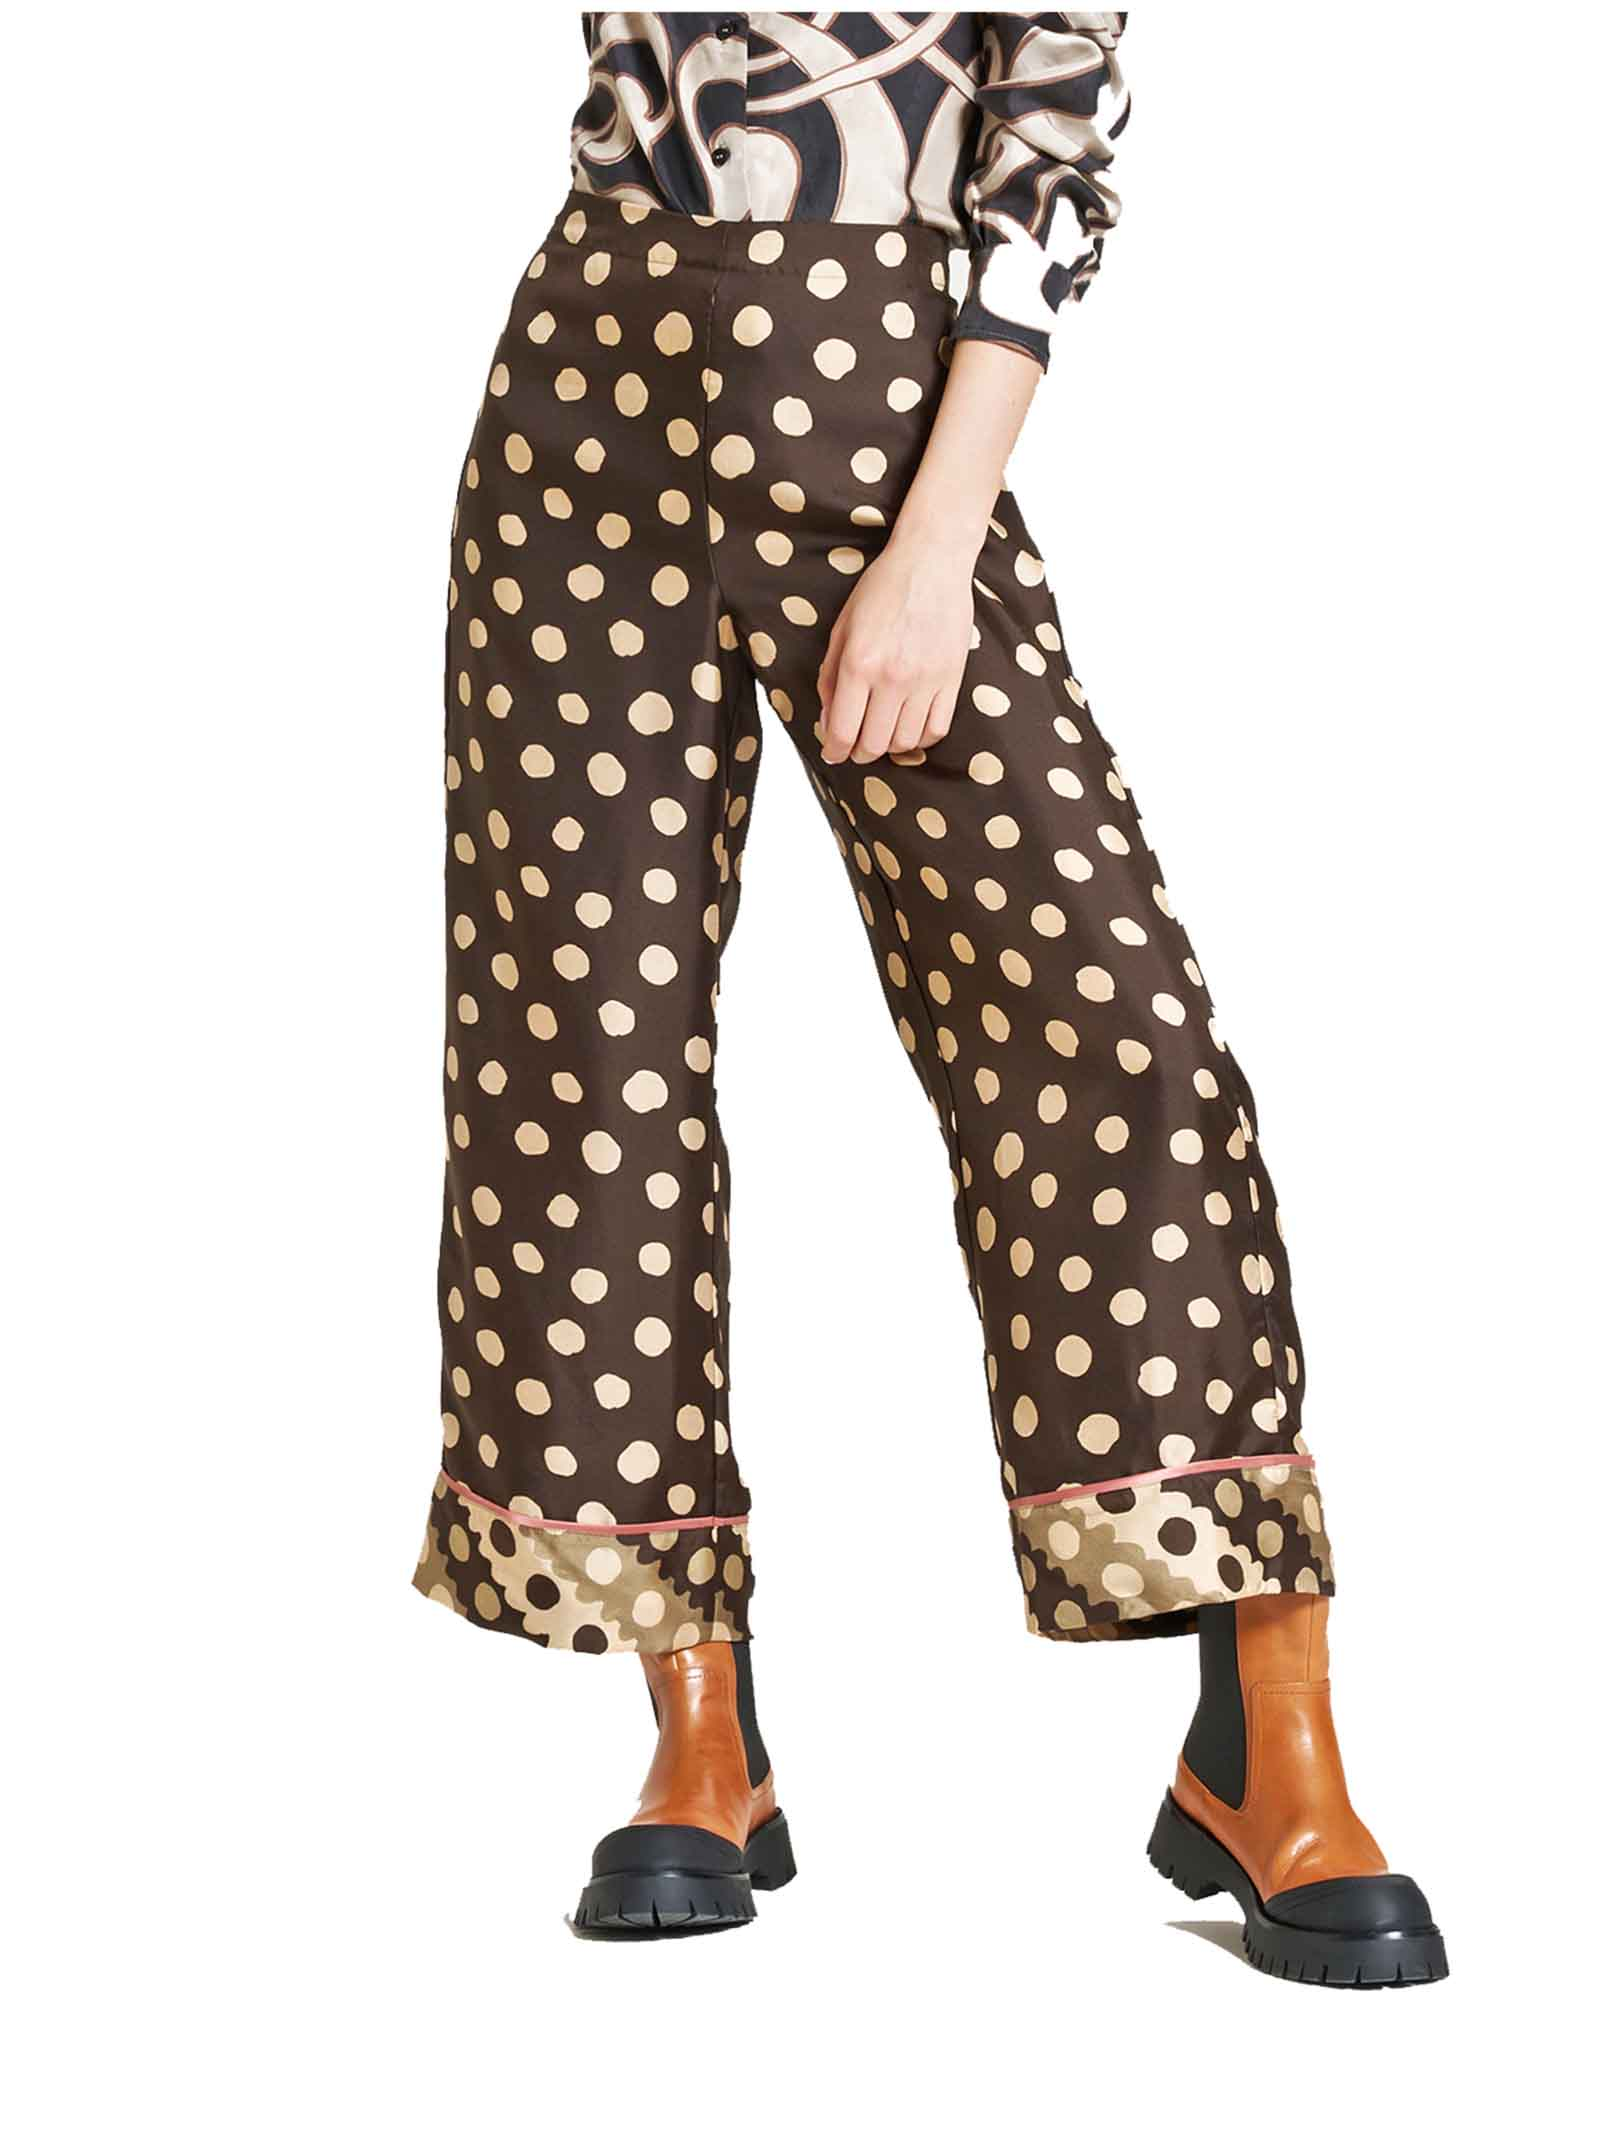 Women's Clothing Trousers Silk Twill Tale in 100% Silk Brown and Ivory Maliparmi | Skirts and Pants | JH739930112B4075